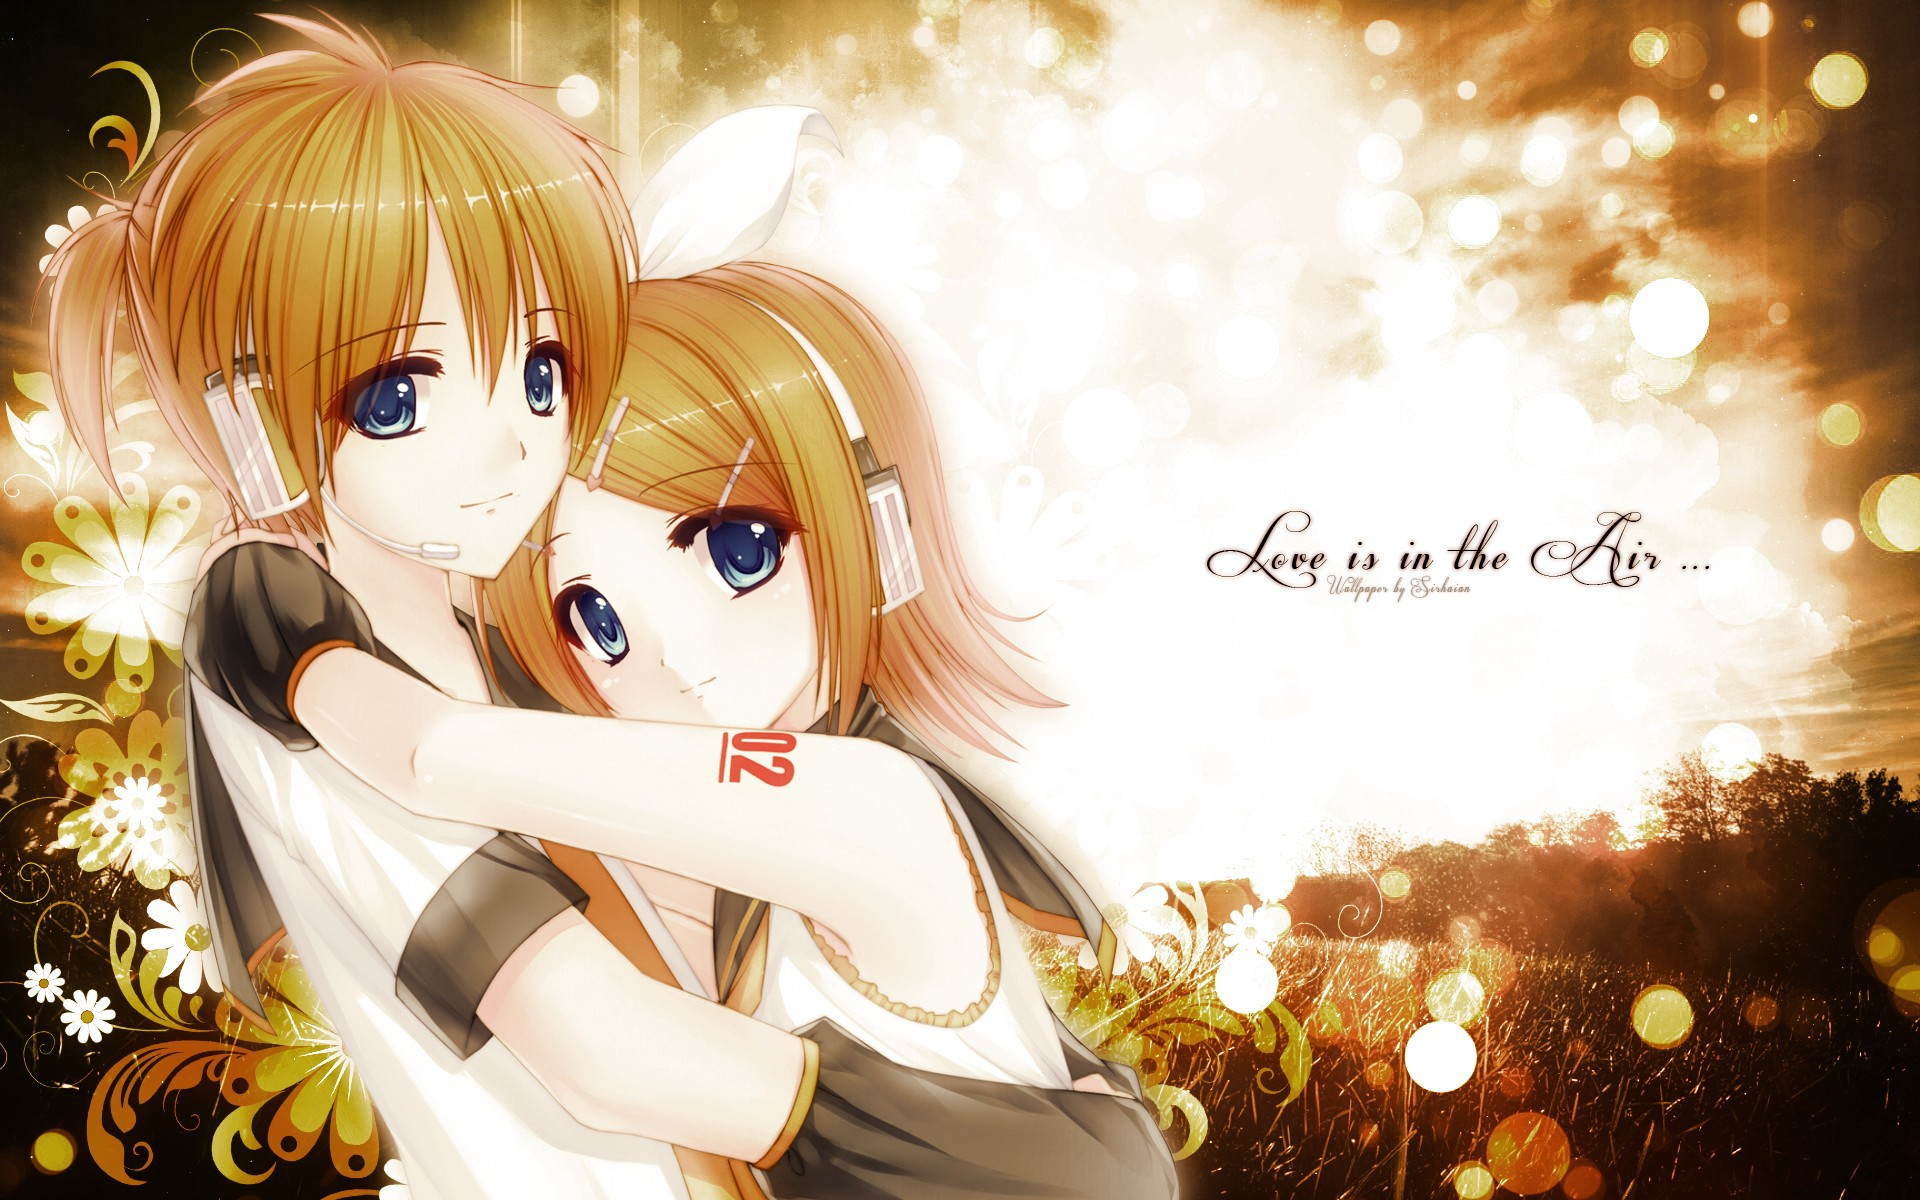 Girls hug wallpapers and images   wallpapers pictures photos 1920x1200